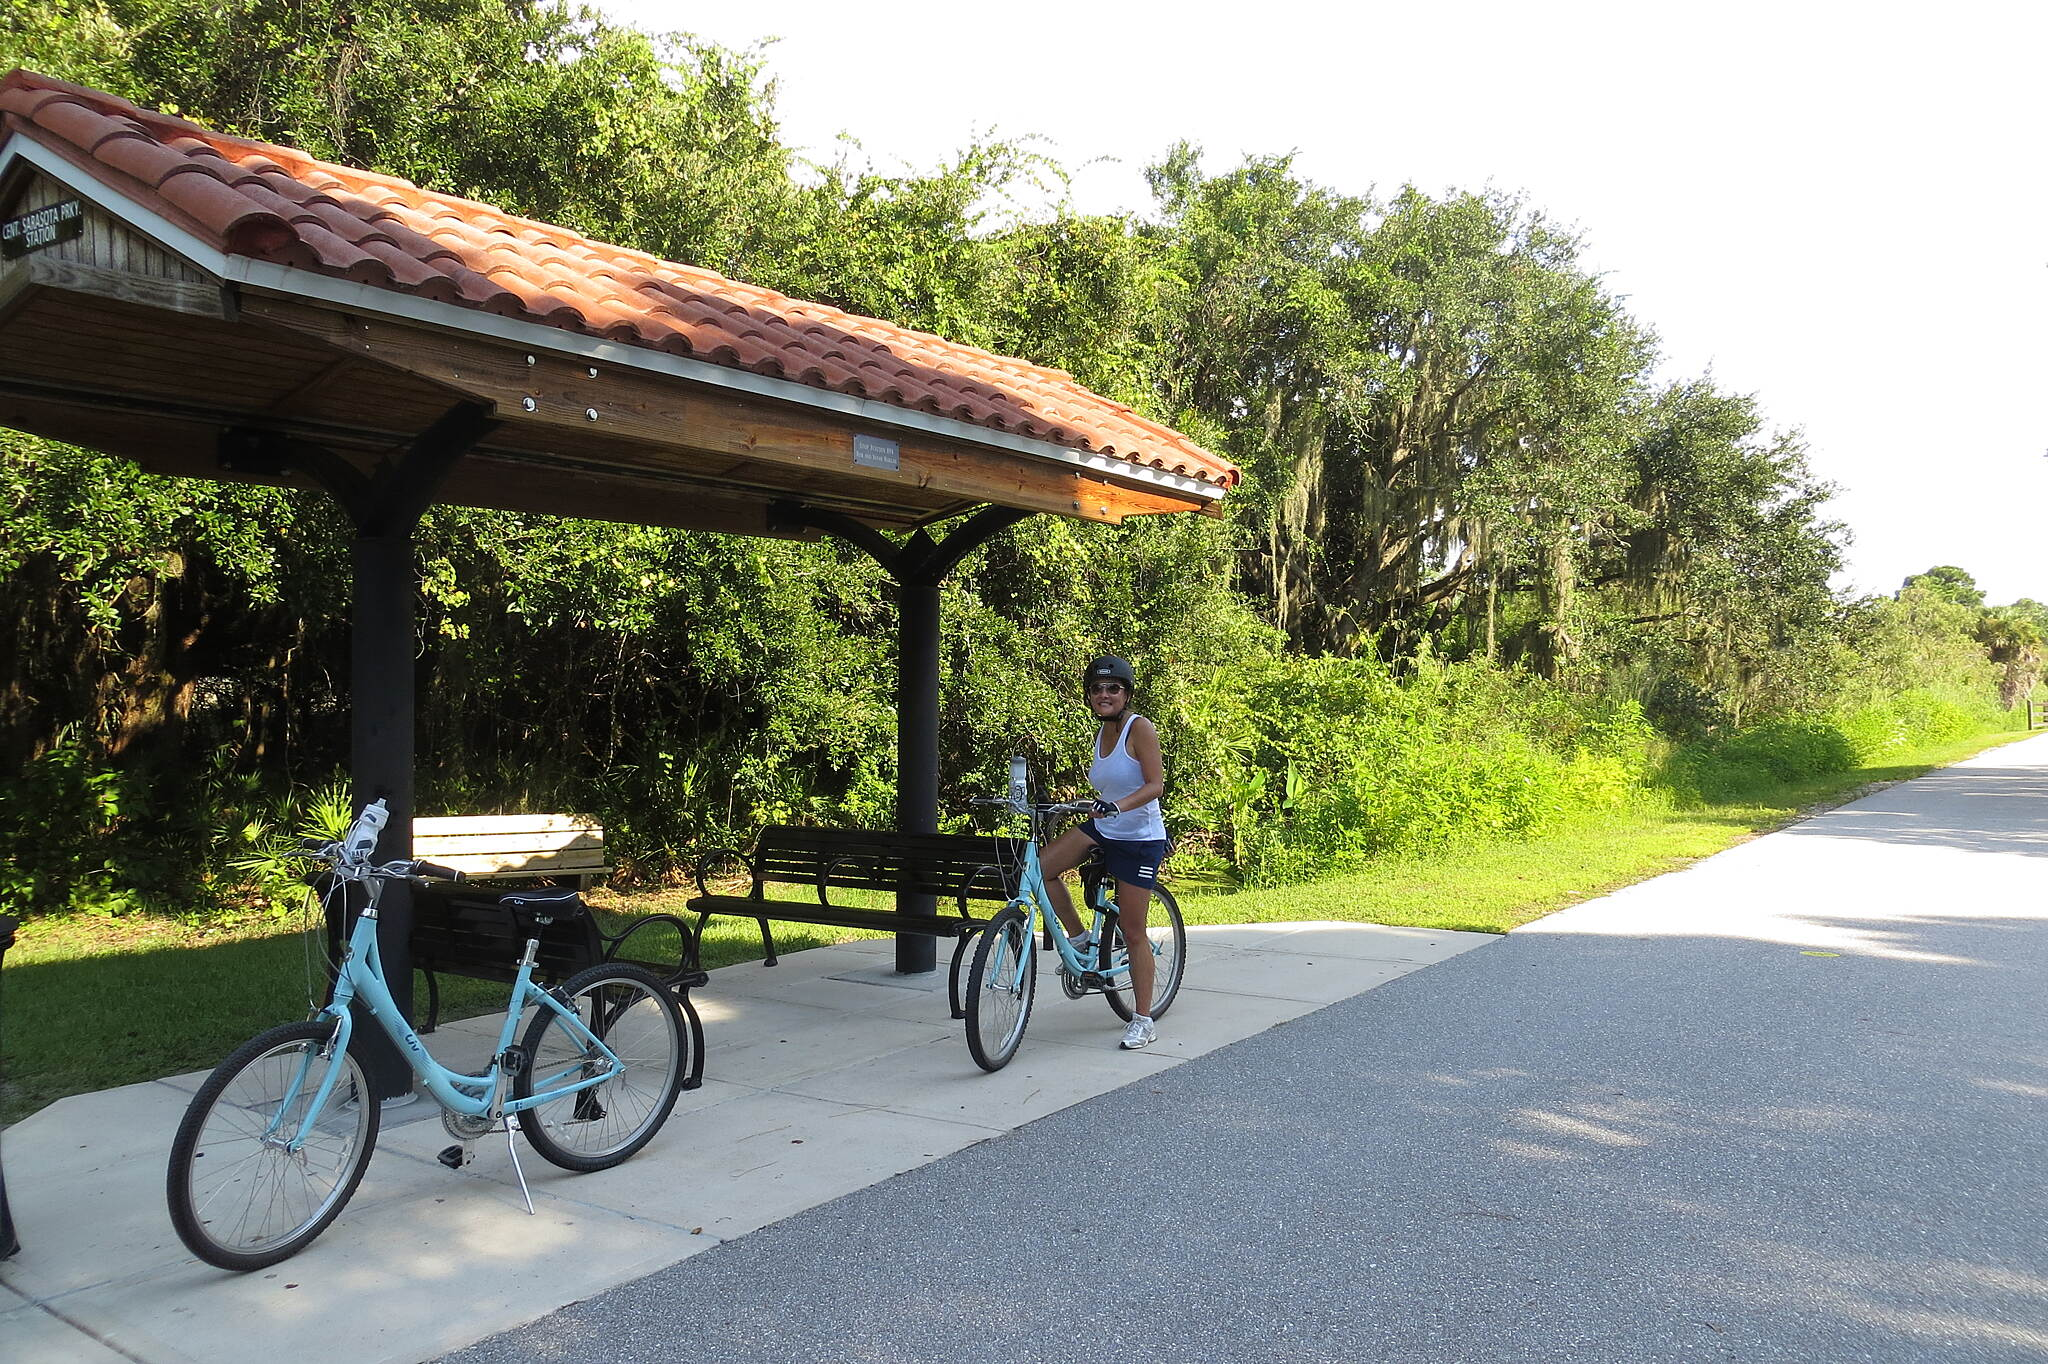 Legacy Trail (FL) Legacy Trail Enjoy shaded respite from the Florida sun at the trail's many covered rest areas.